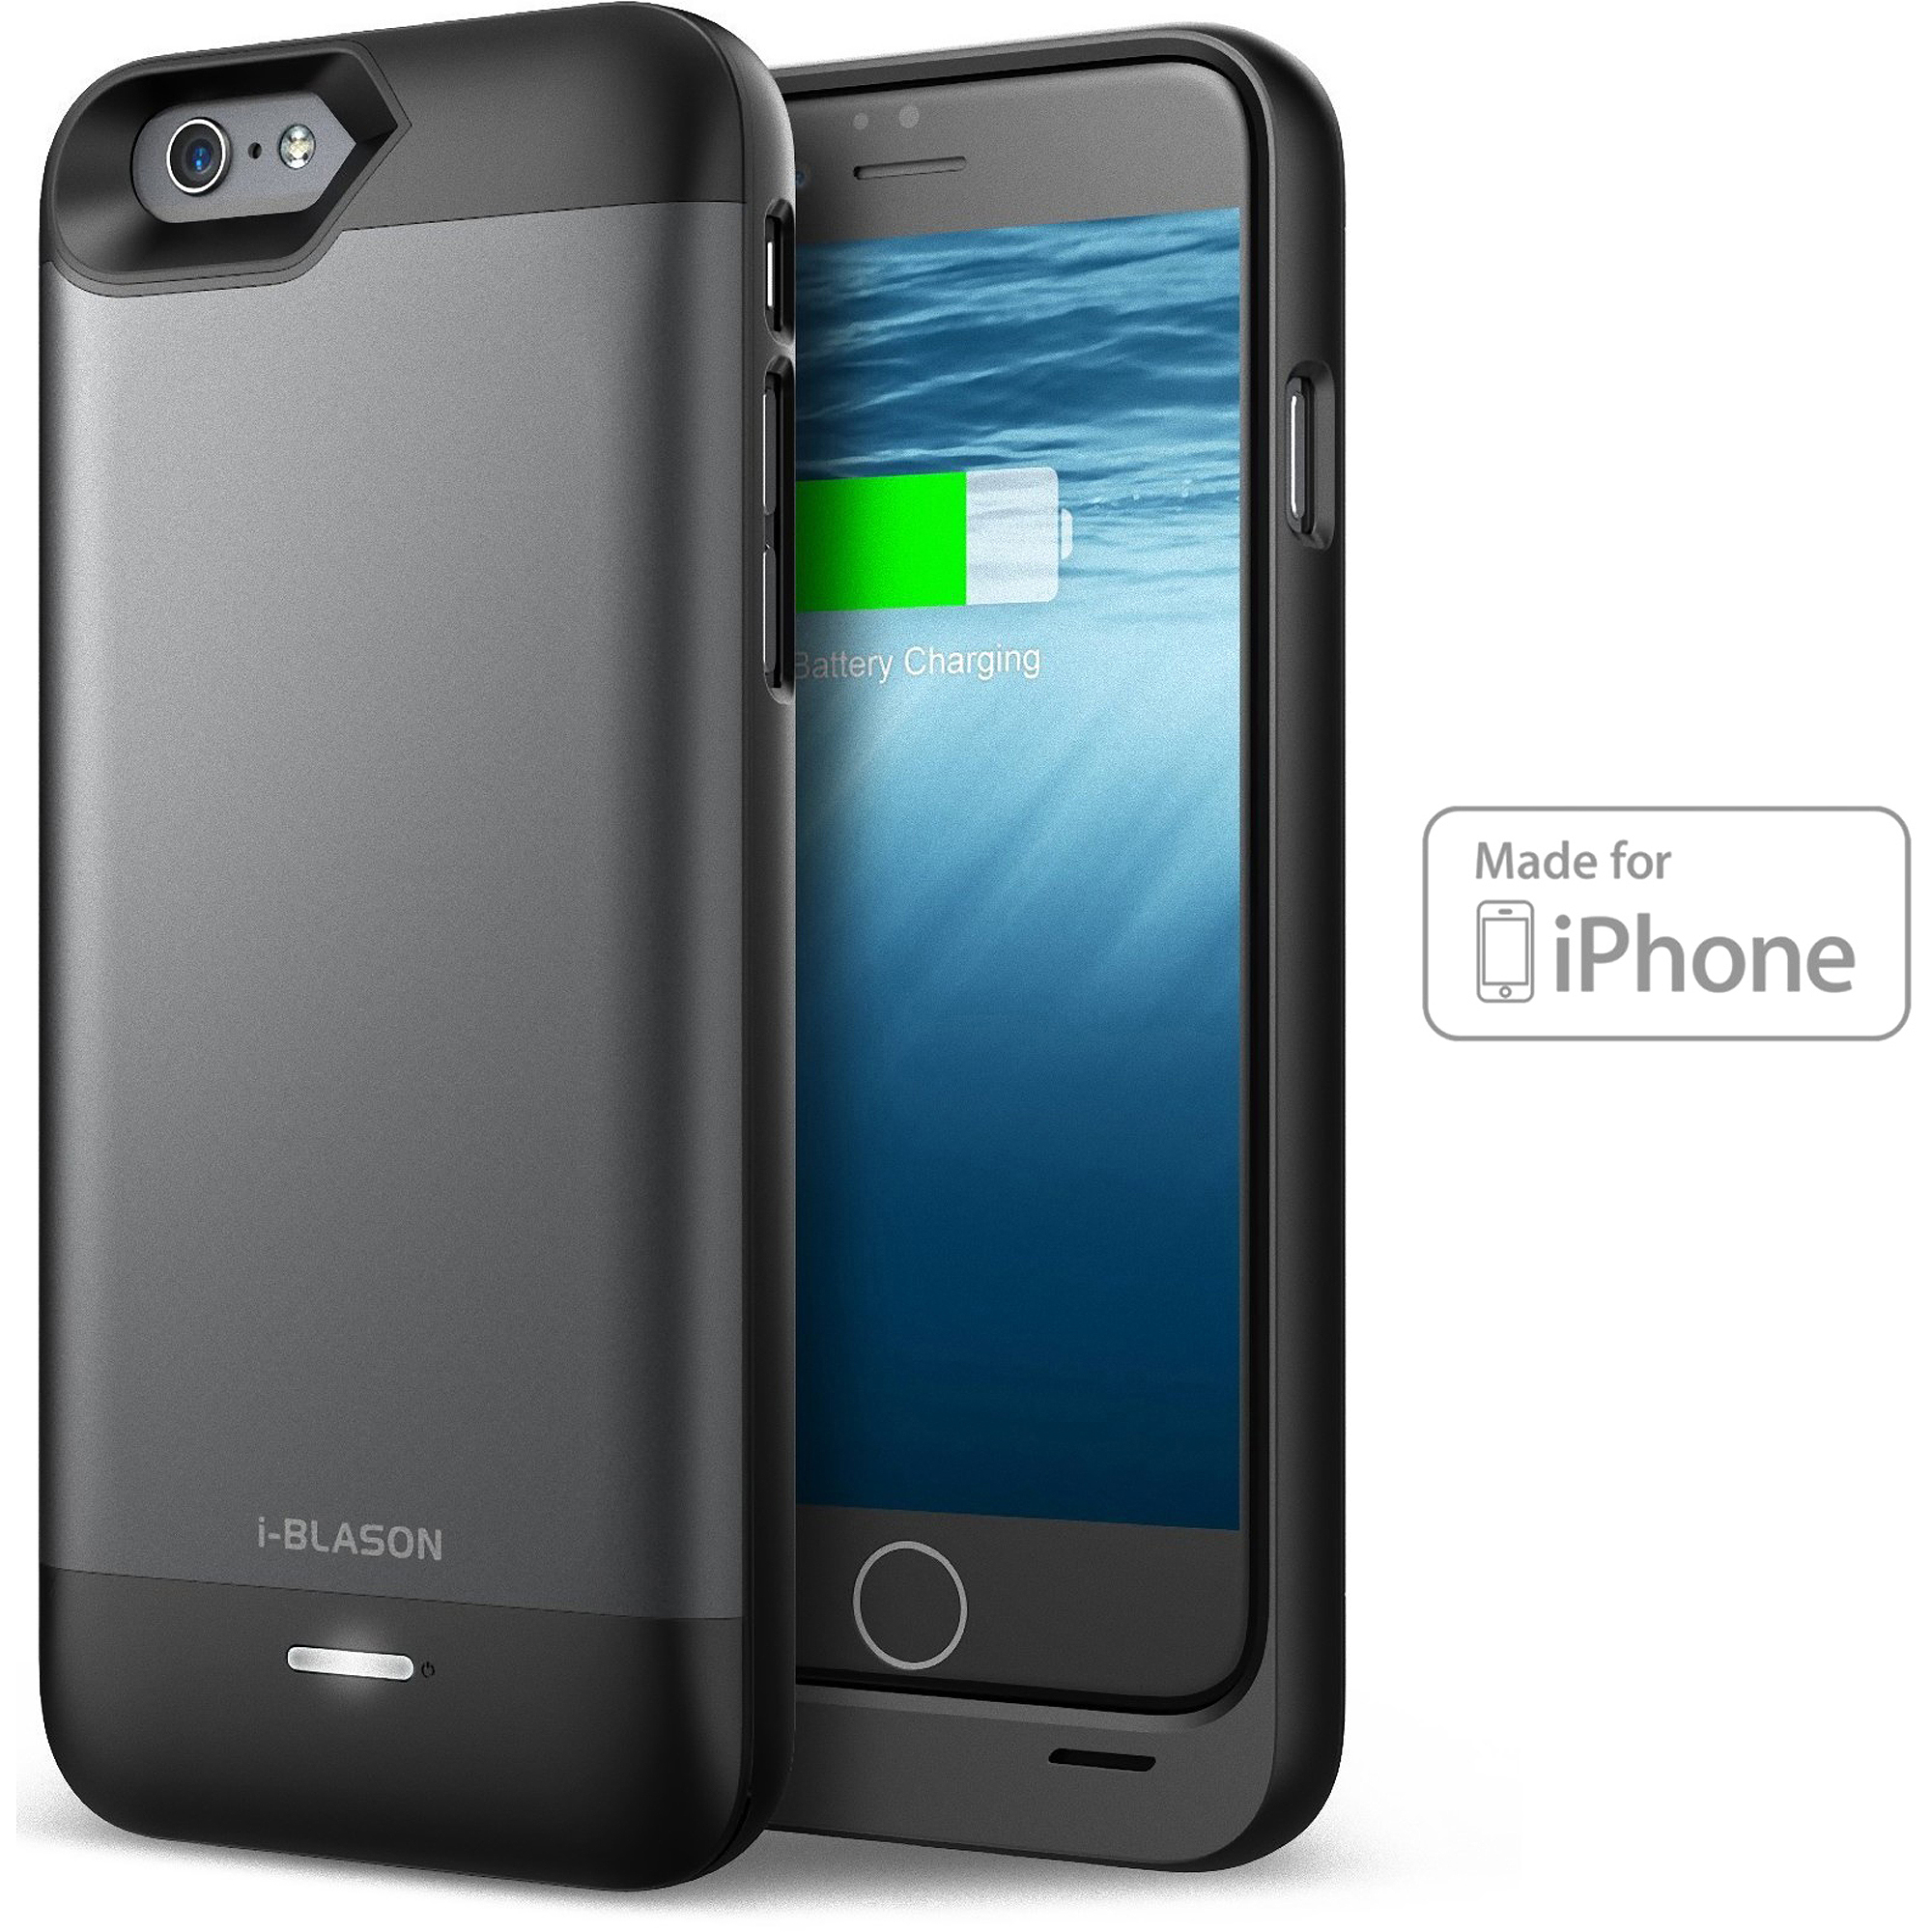 I-Blason UnityPower - Battery case for cell phone - polycarbonate, thermoplastic polyurethane, rubber coating - gray, black - for Apple iPhone 6